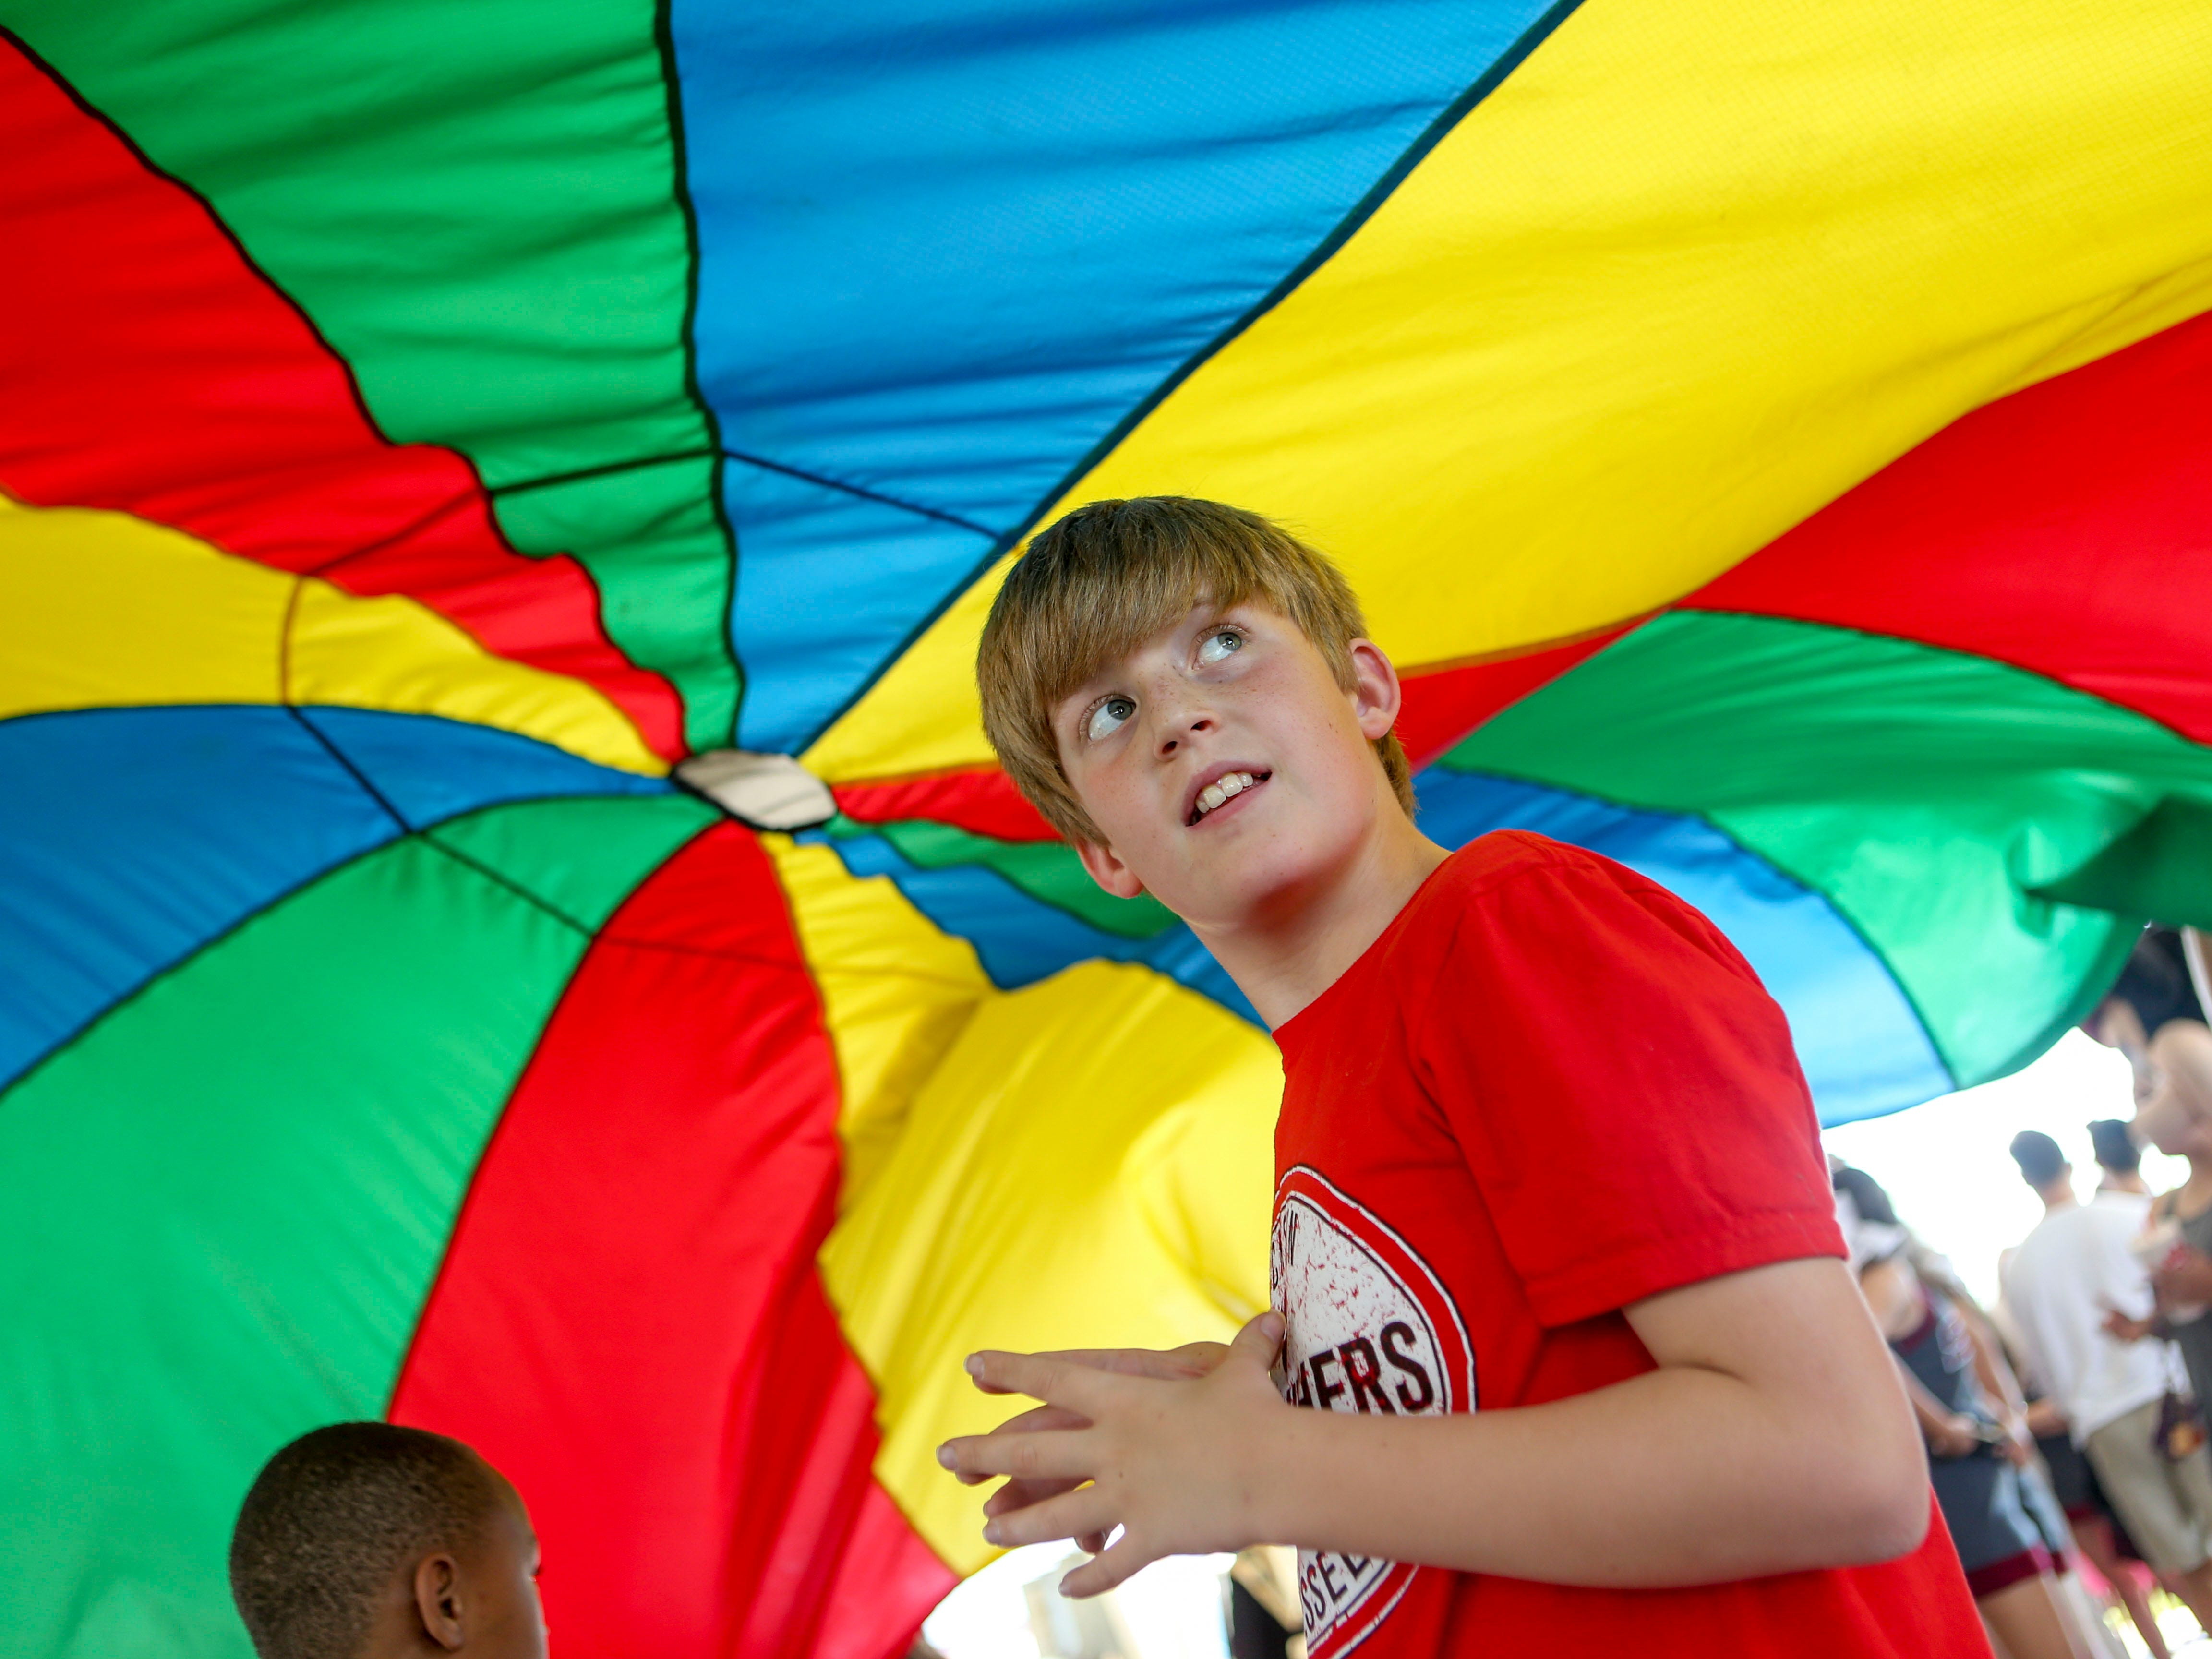 A boy looks around at people tossing a large tarp over his head at the Day of Champions celebration held at Jackson Fairgrounds Park in Jackson, Tenn., on Wednesday, Sept. 19, 2018.